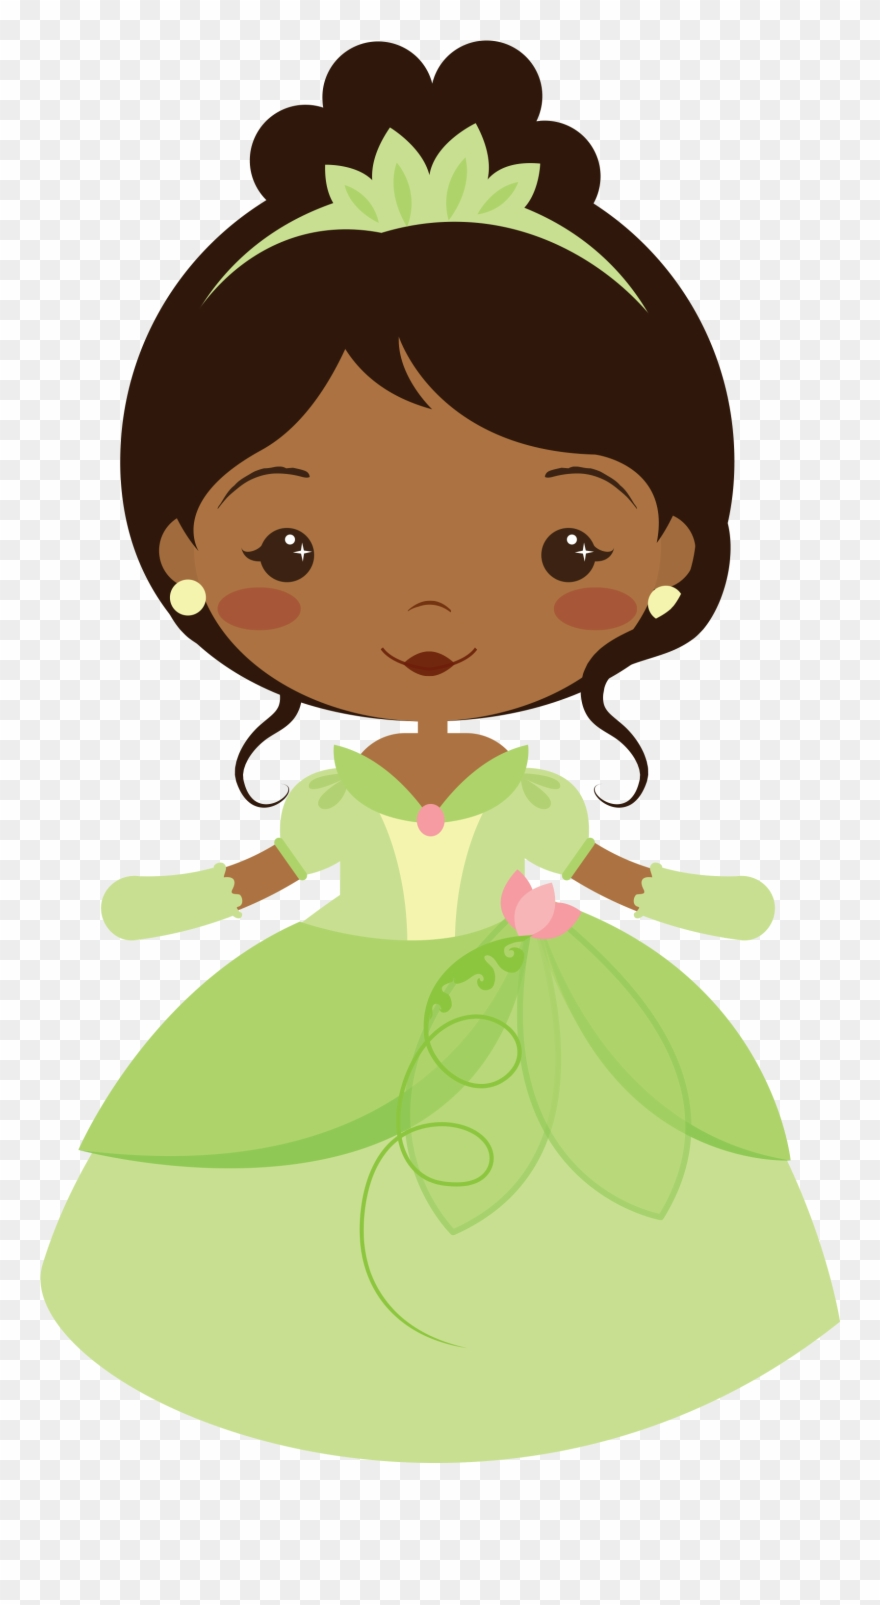 medium resolution of iswhwipvlyfxb anlu special moments cute princess tiana clipart png download